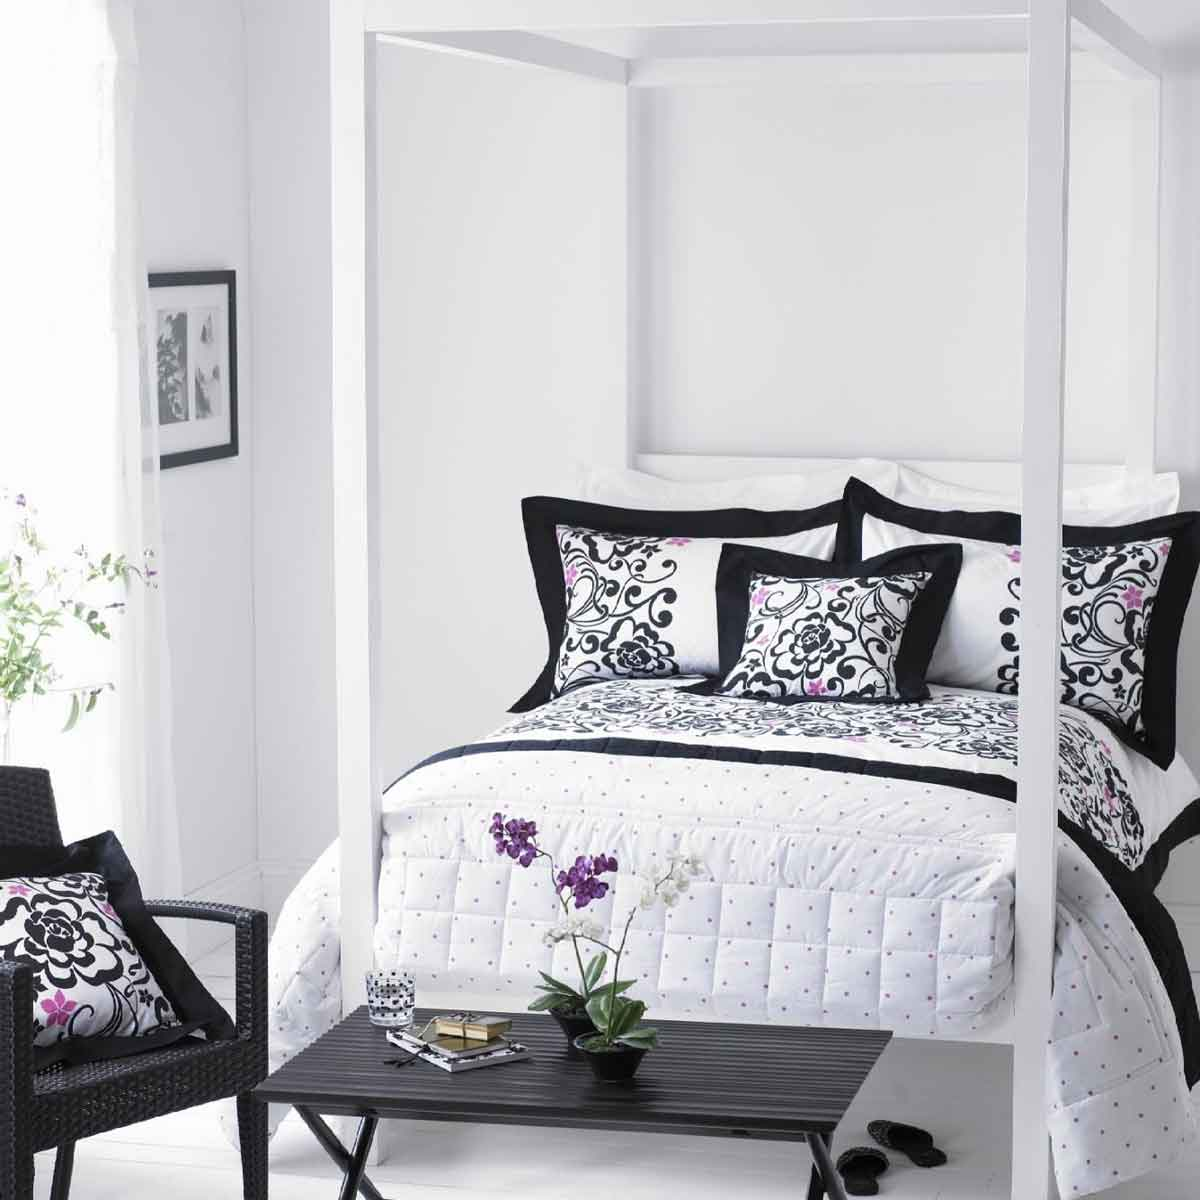 French Bedroom Black And White Teenage Bedroom Wallpaper Uk Wooden Bedroom Blinds Bedroom Oasis Decorating Ideas: Black White Grey Bedroom 2017